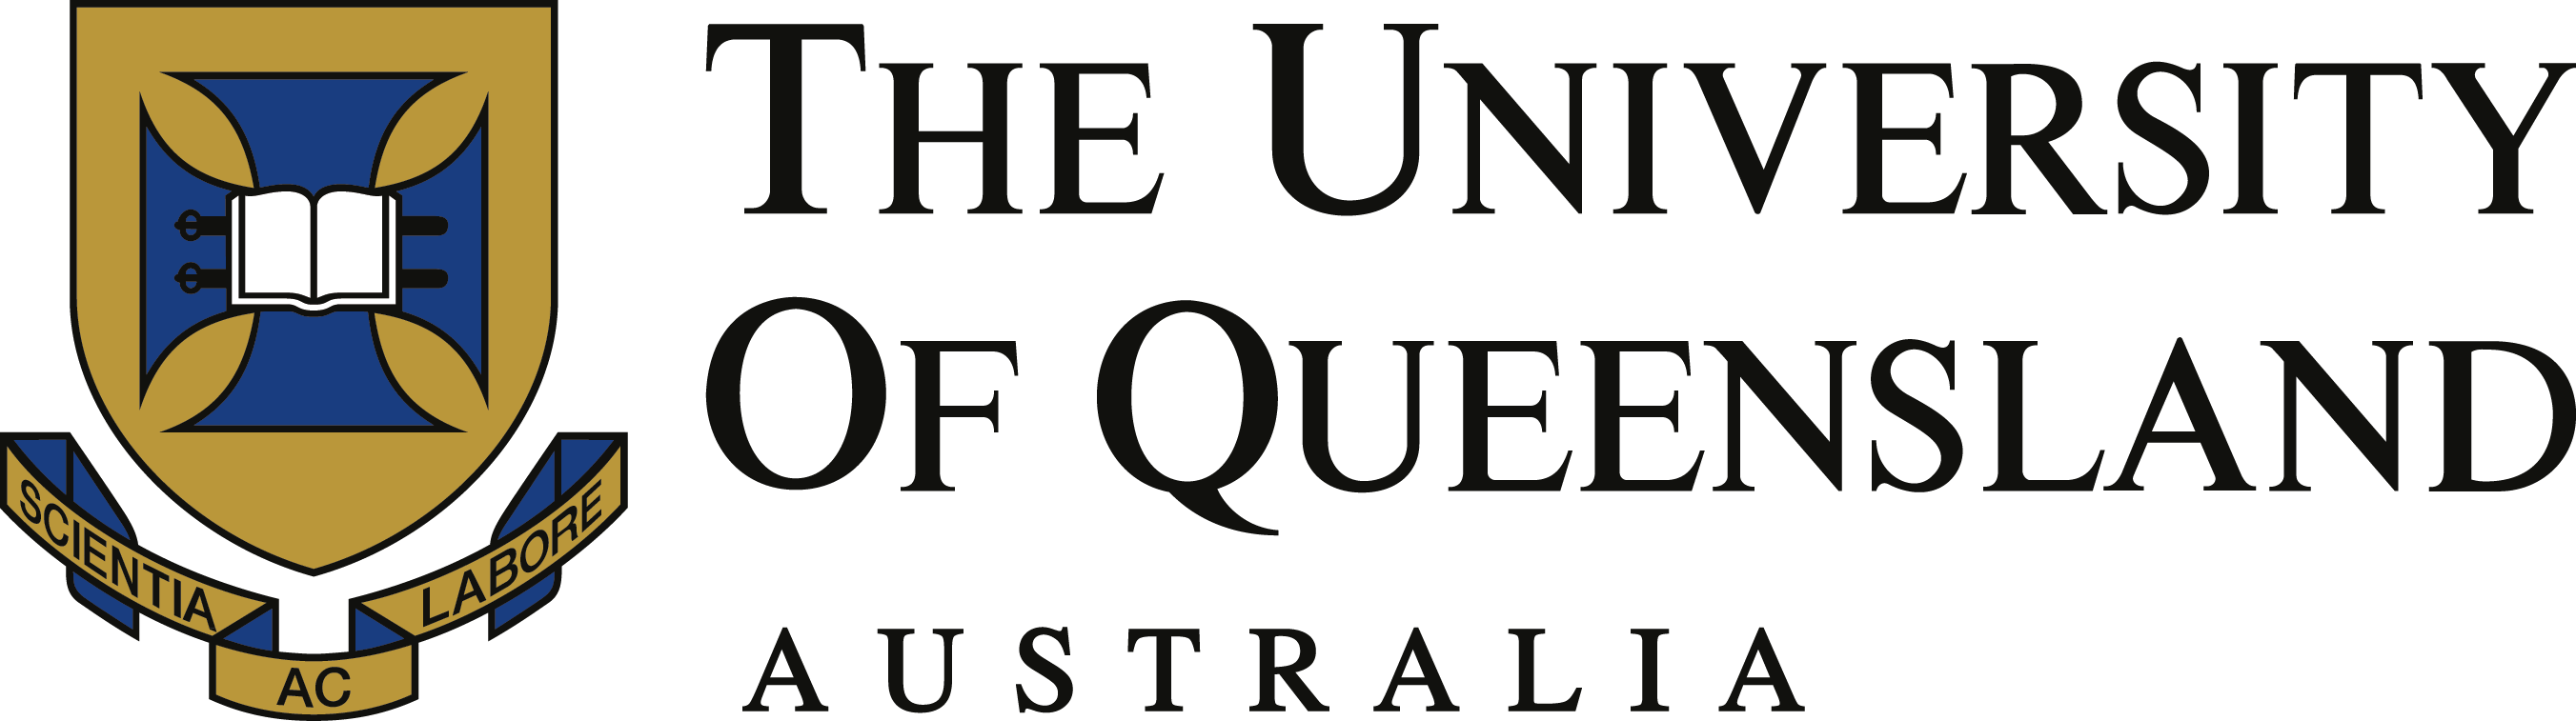 University of Queensland UQ logo